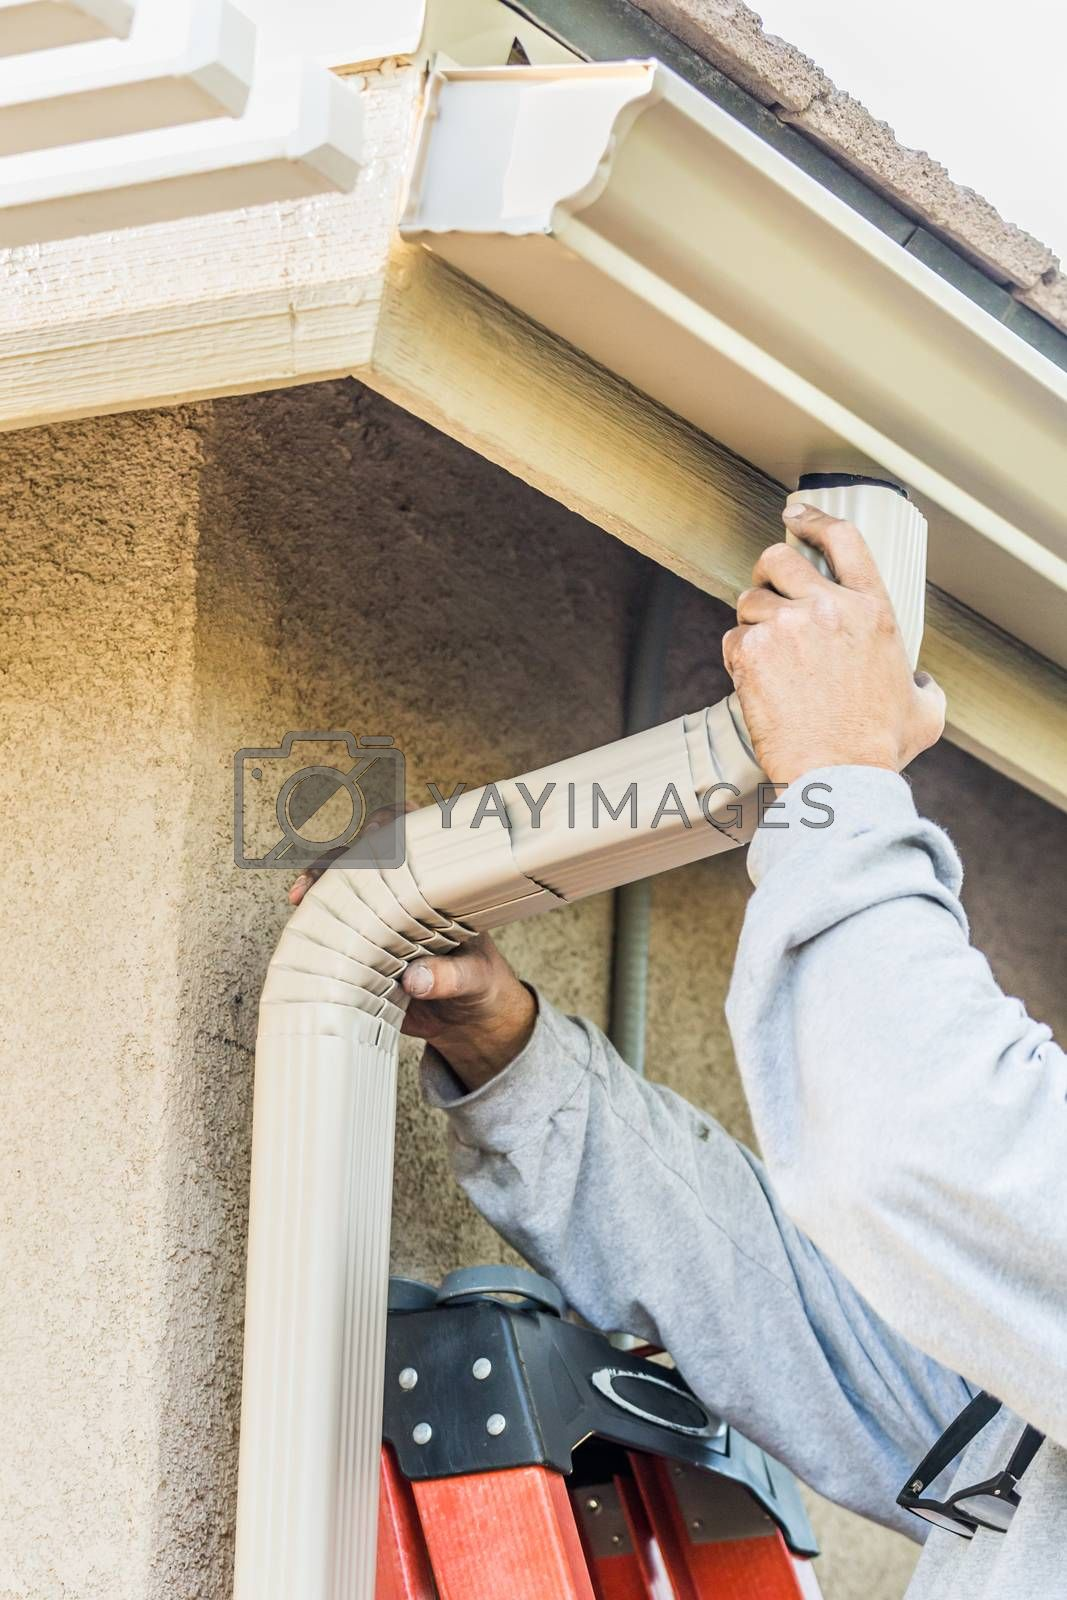 Worker Attaching Aluminum Rain Gutter and Down Spout to Fascia of House. by Feverpitched